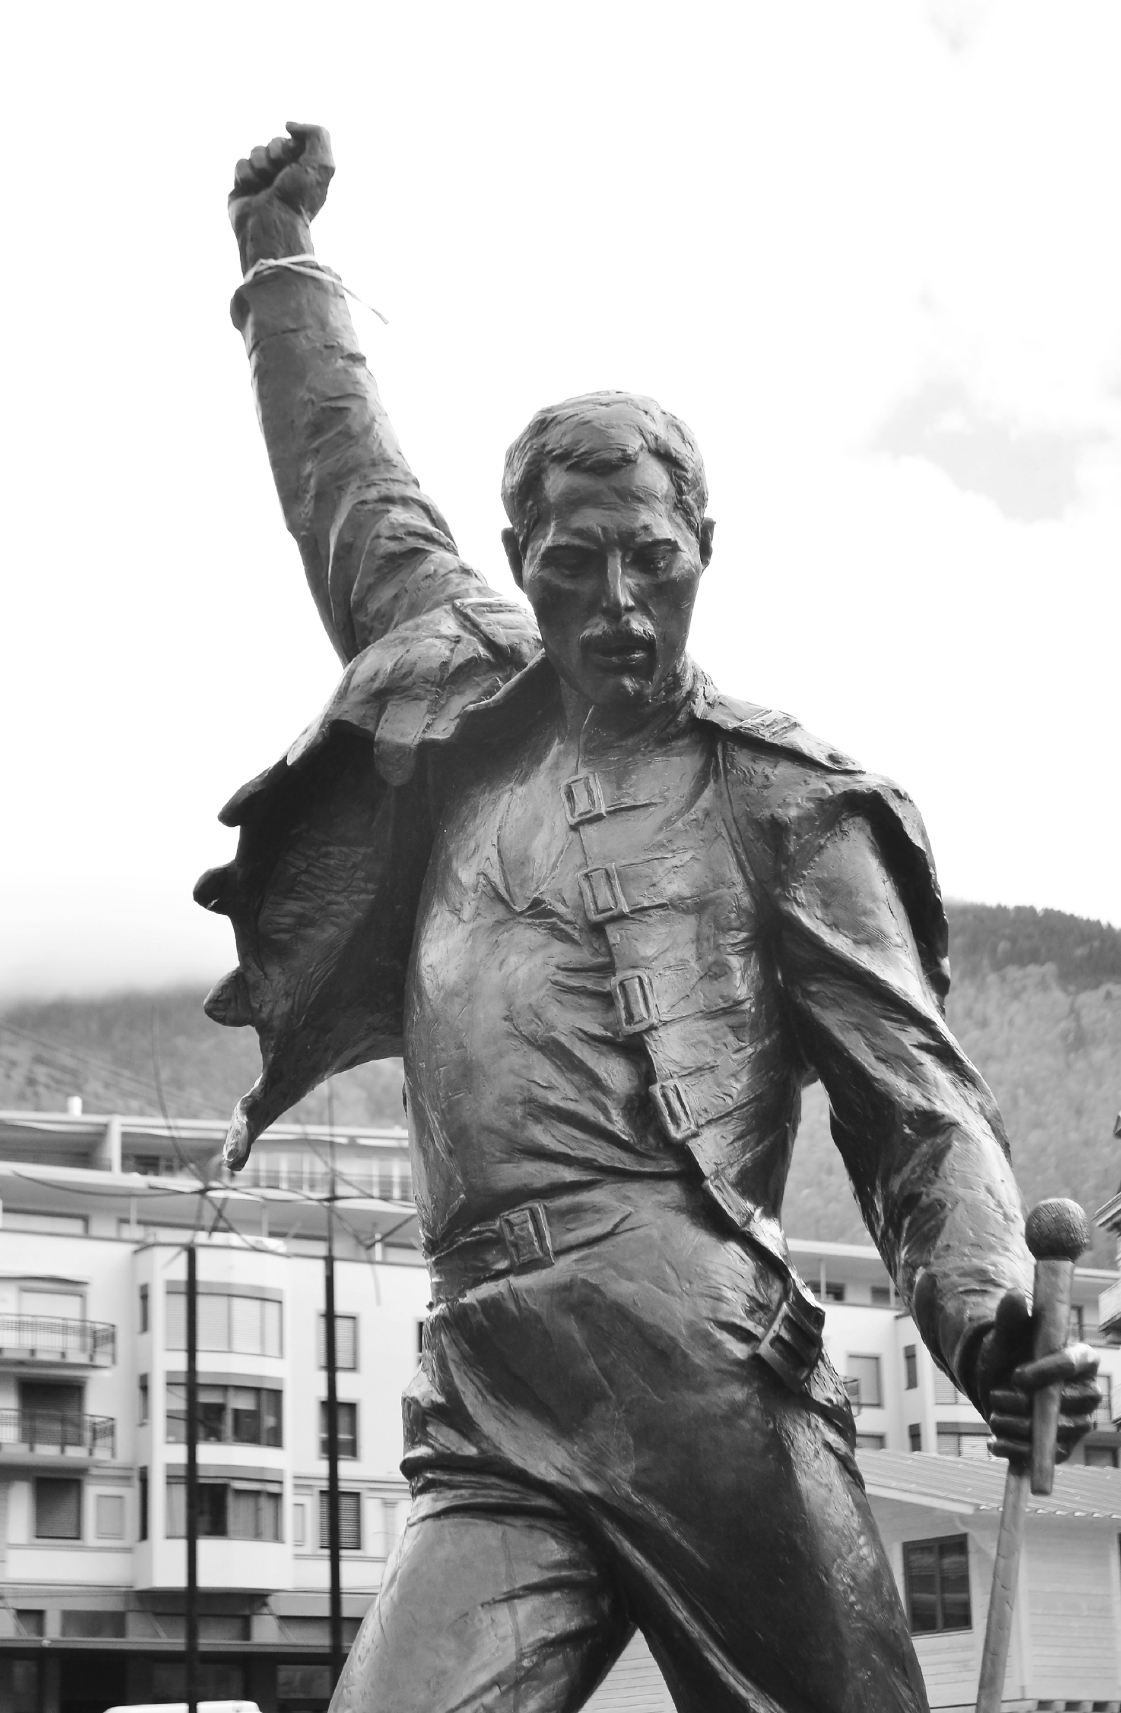 Statue of Freddie Mercury (konstantinks)